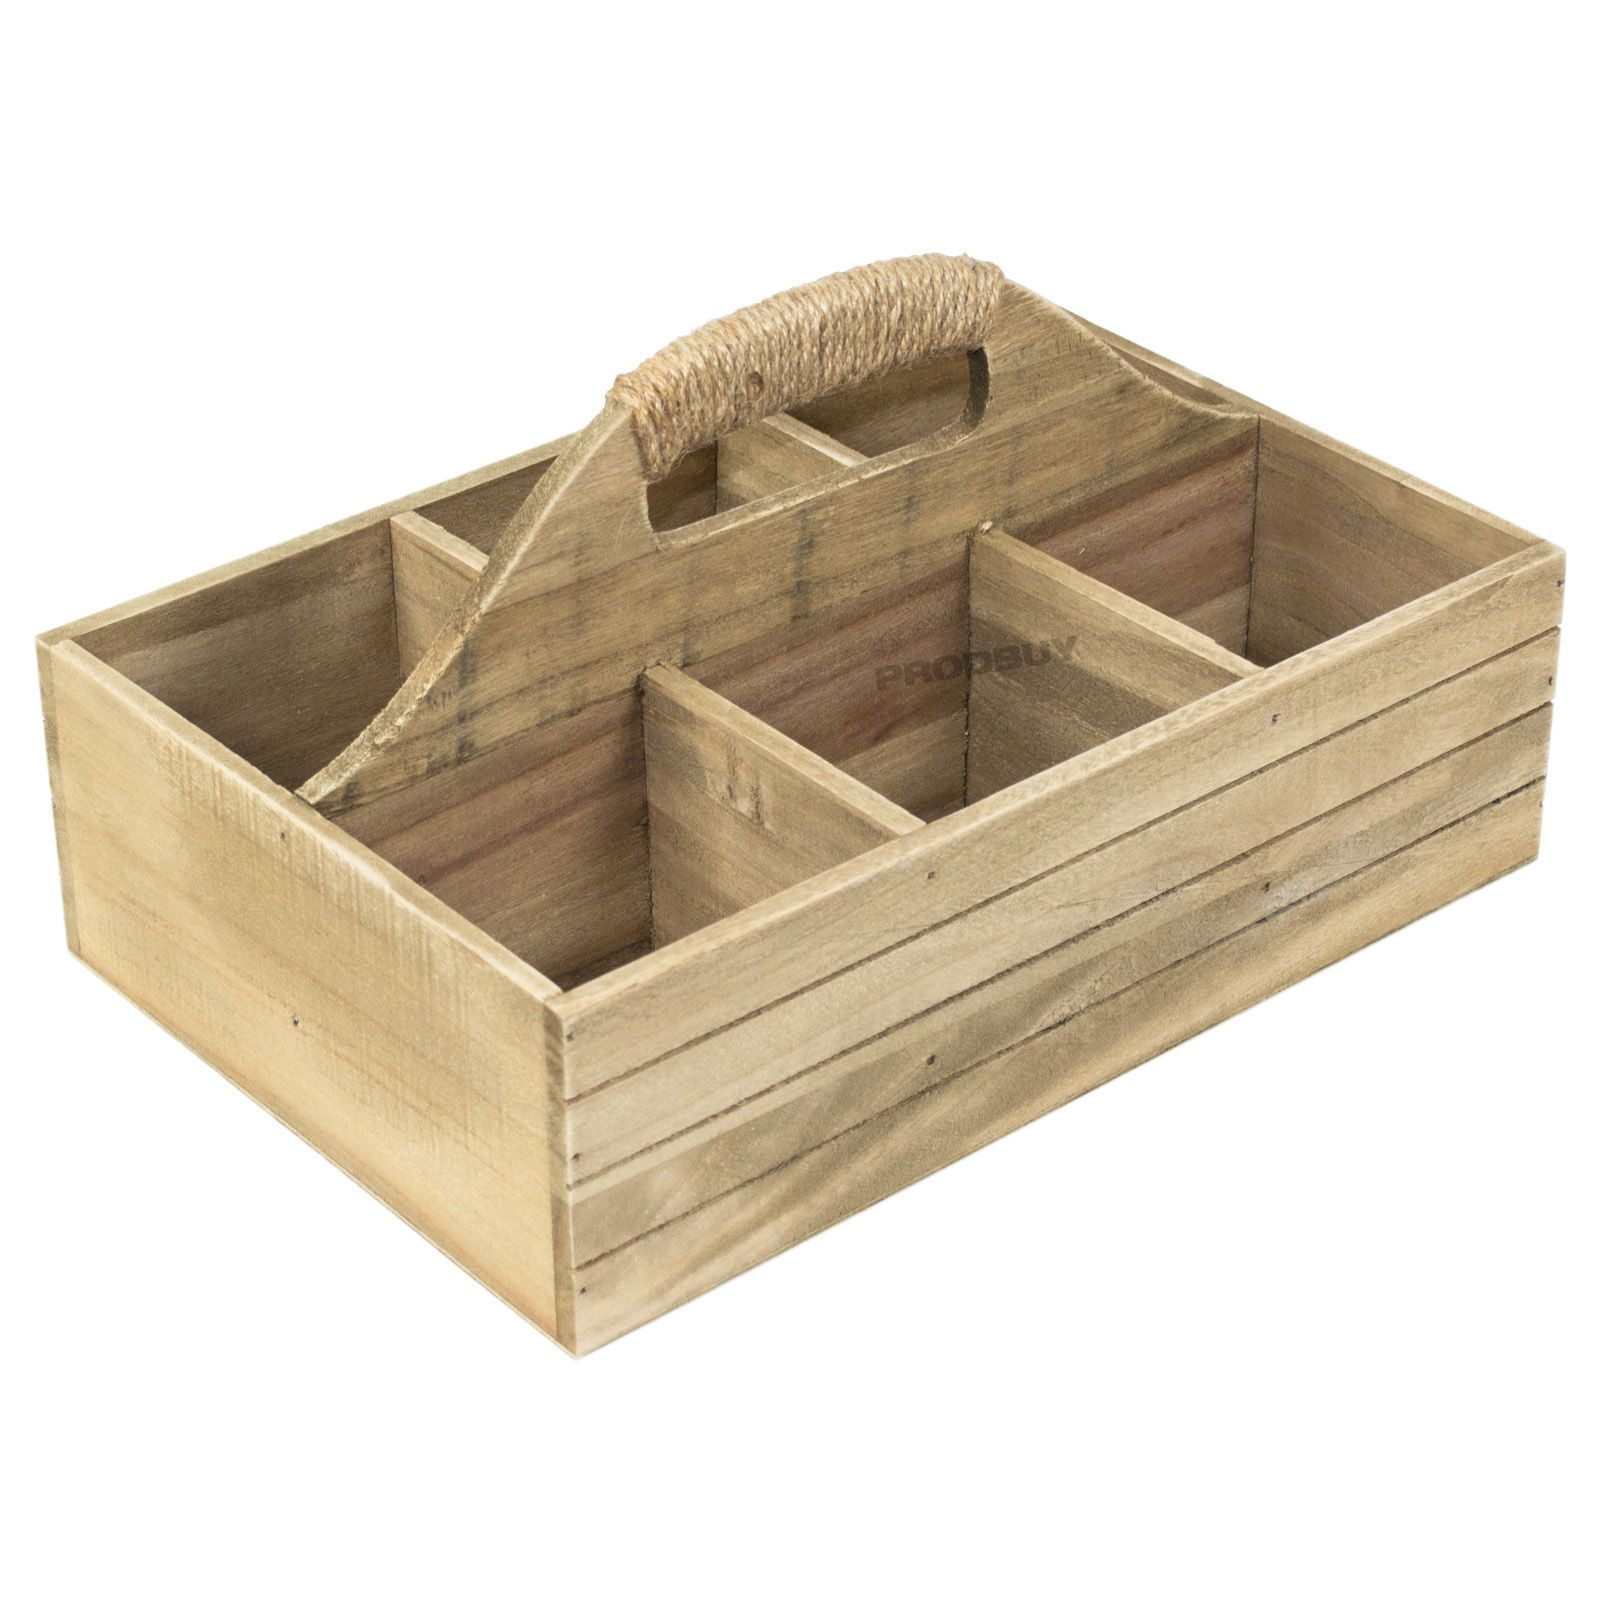 Wooden Crate With Handles 6 Compartment Vintage Chalk Board Wooden Crate With Handle Milk